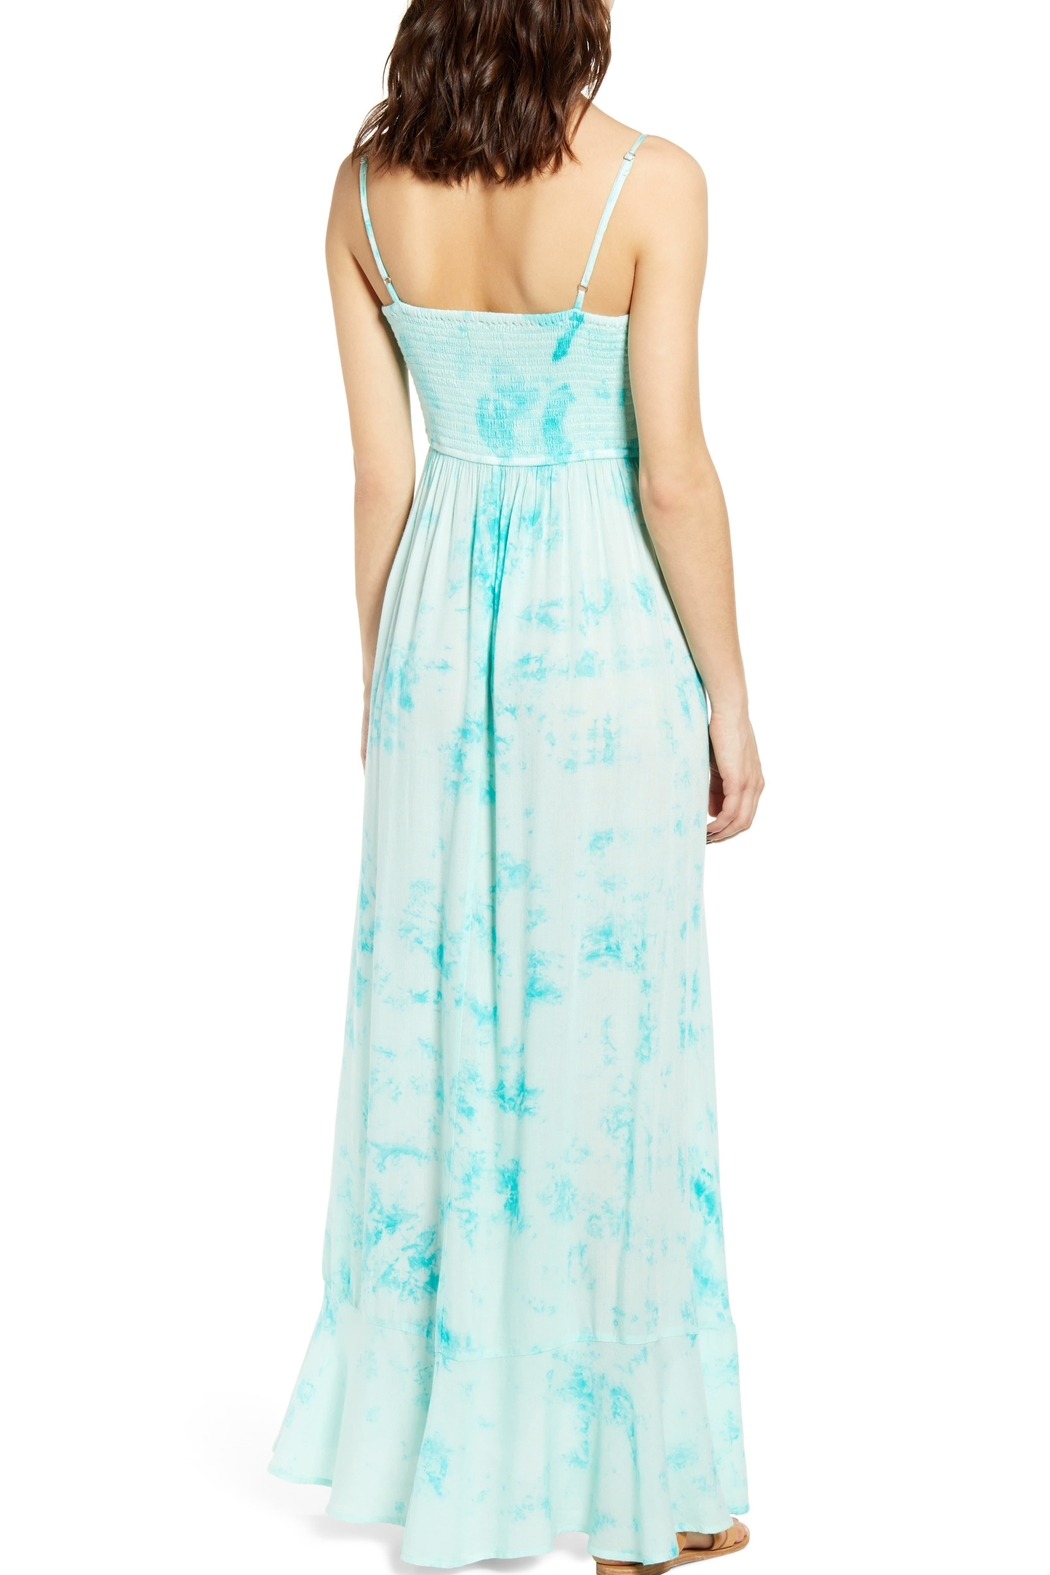 Band Of Gypsies Jade Tie-Dye Maxi - Front Full Image